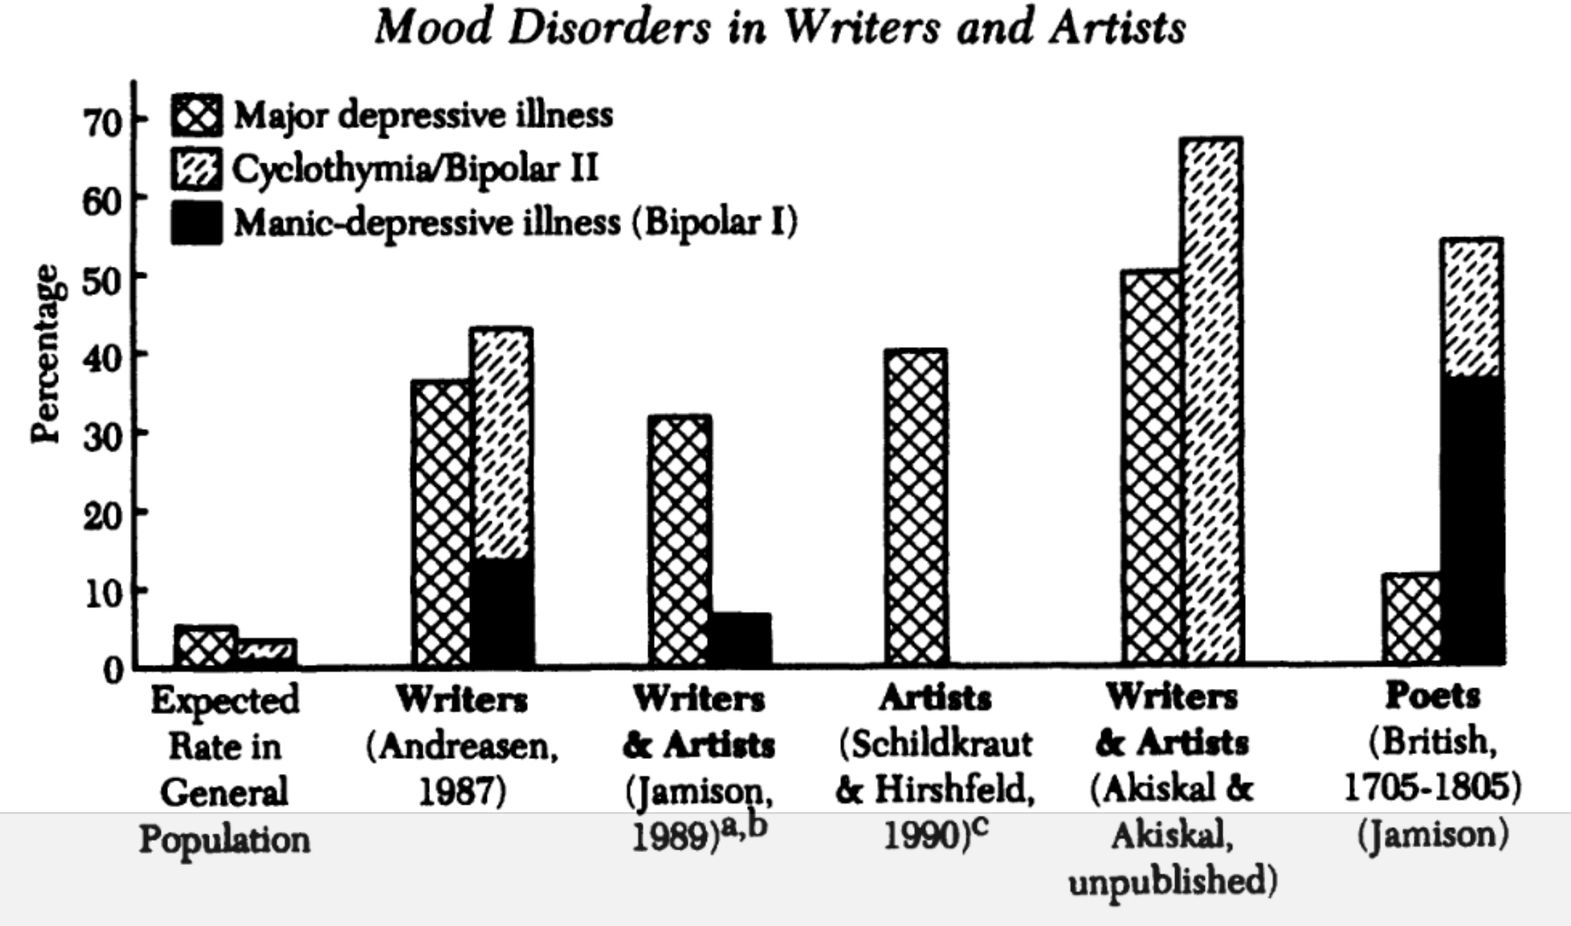 From Jamison, Kay R. Touched with Fire: Manic-depressive Illness and the Artistic Temperament . 1st Free Press Paperback ed. Free Press Paperback. New York: Free Press Paperbacks, 1994.